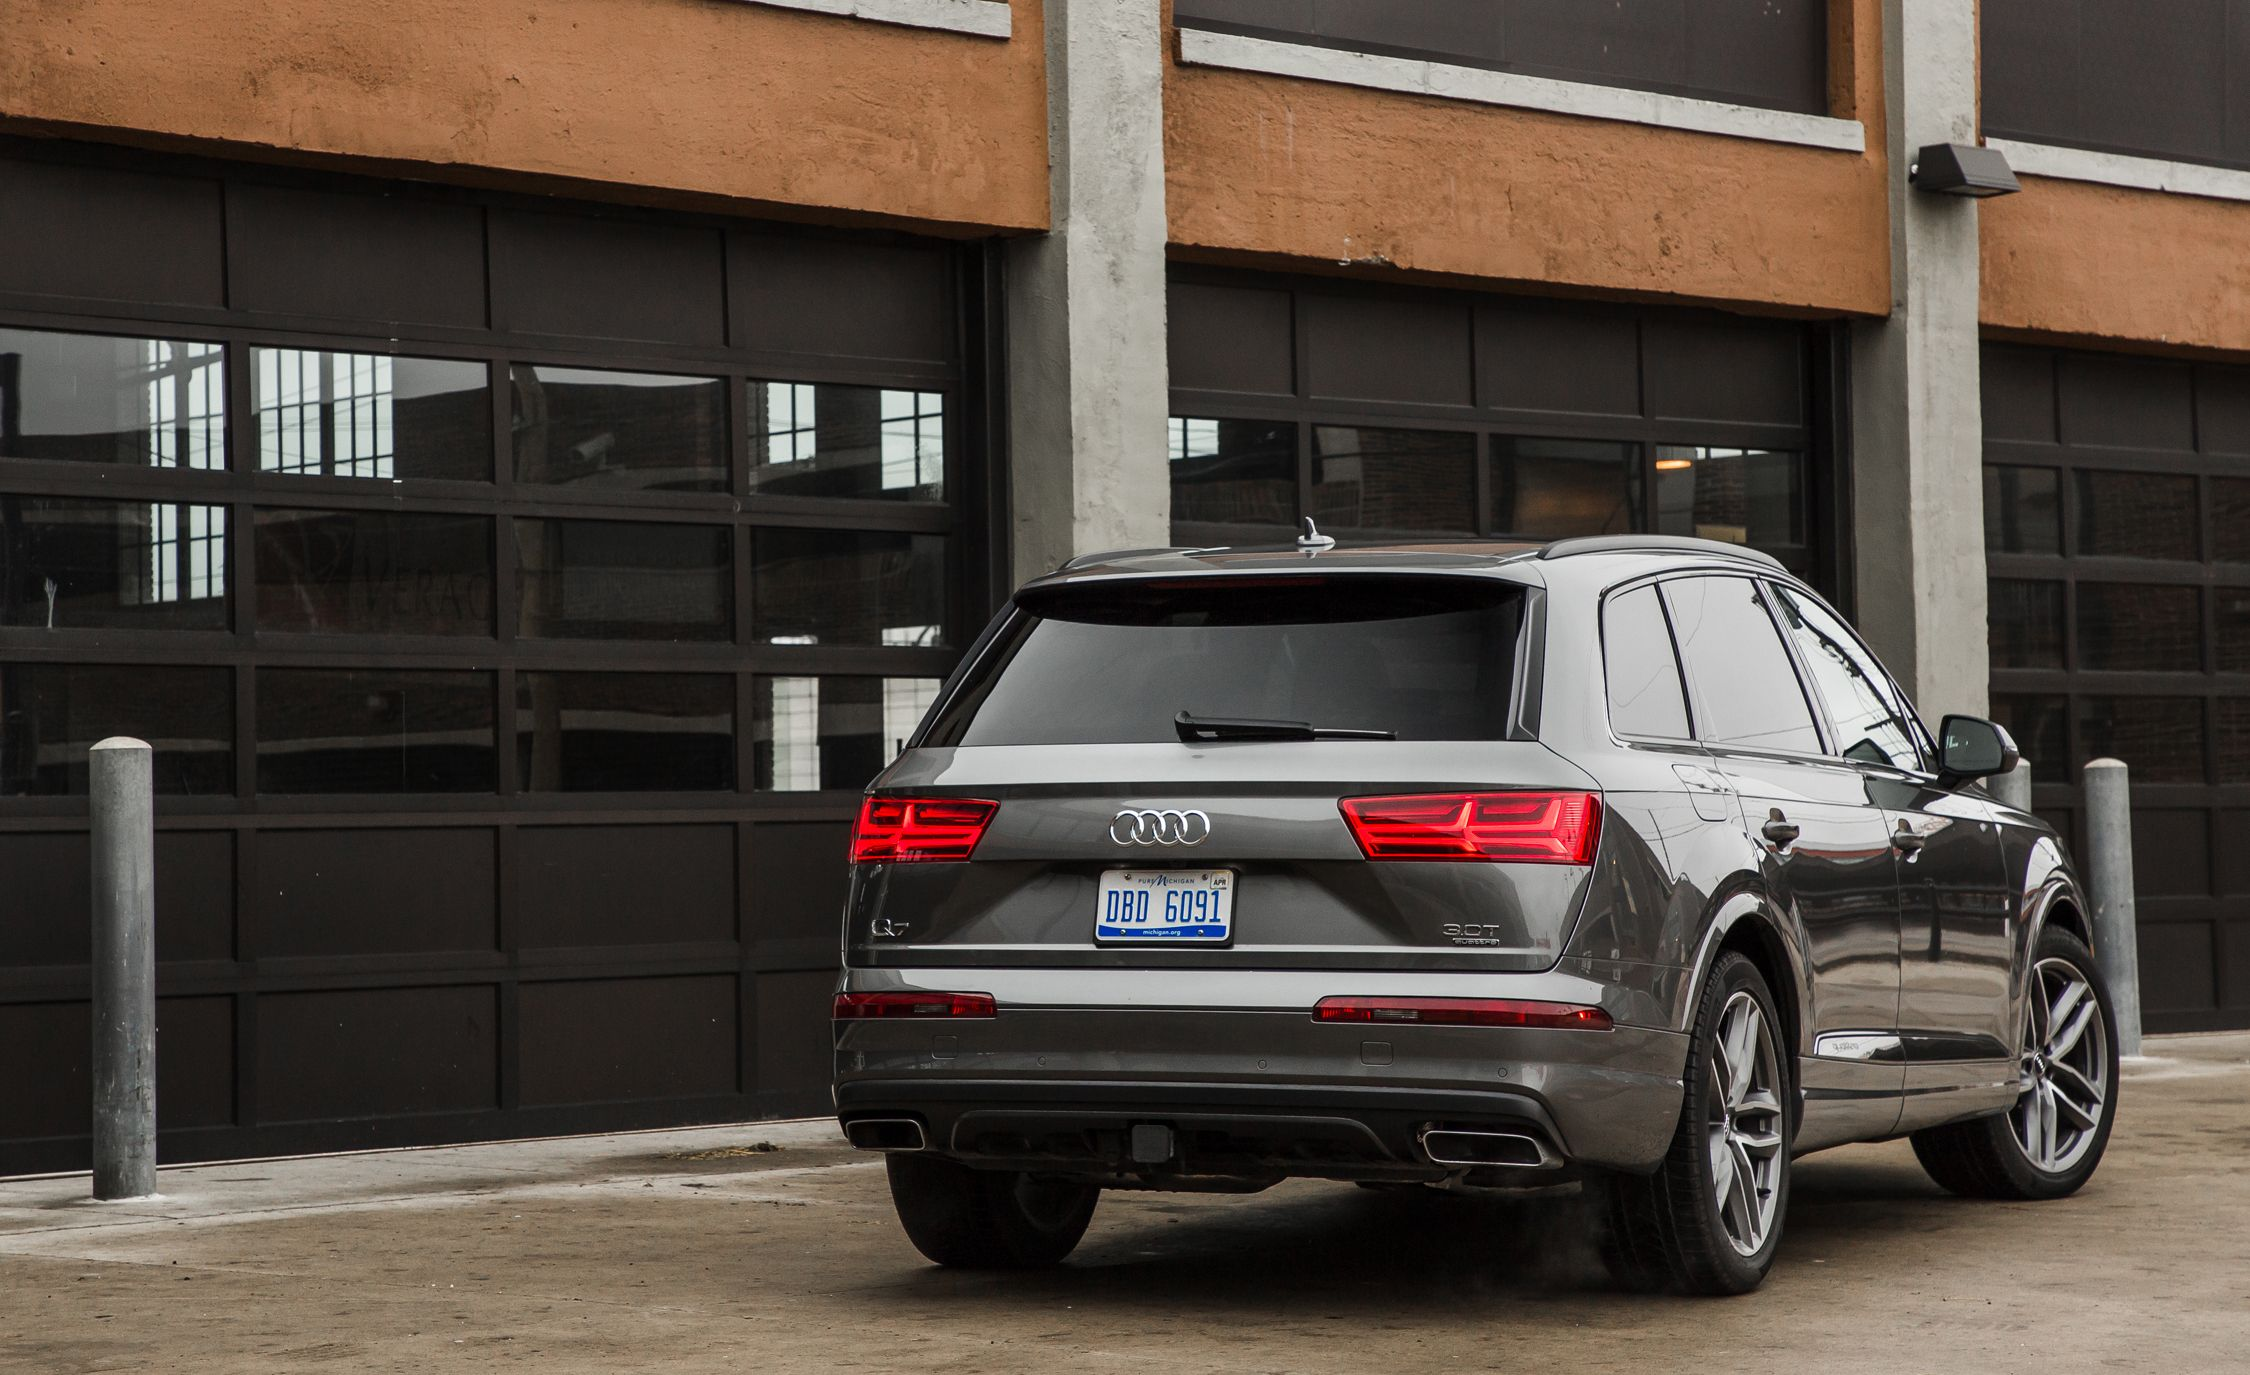 2018 Audi Q7 | Cargo Space and Storage Review | Car and Driver